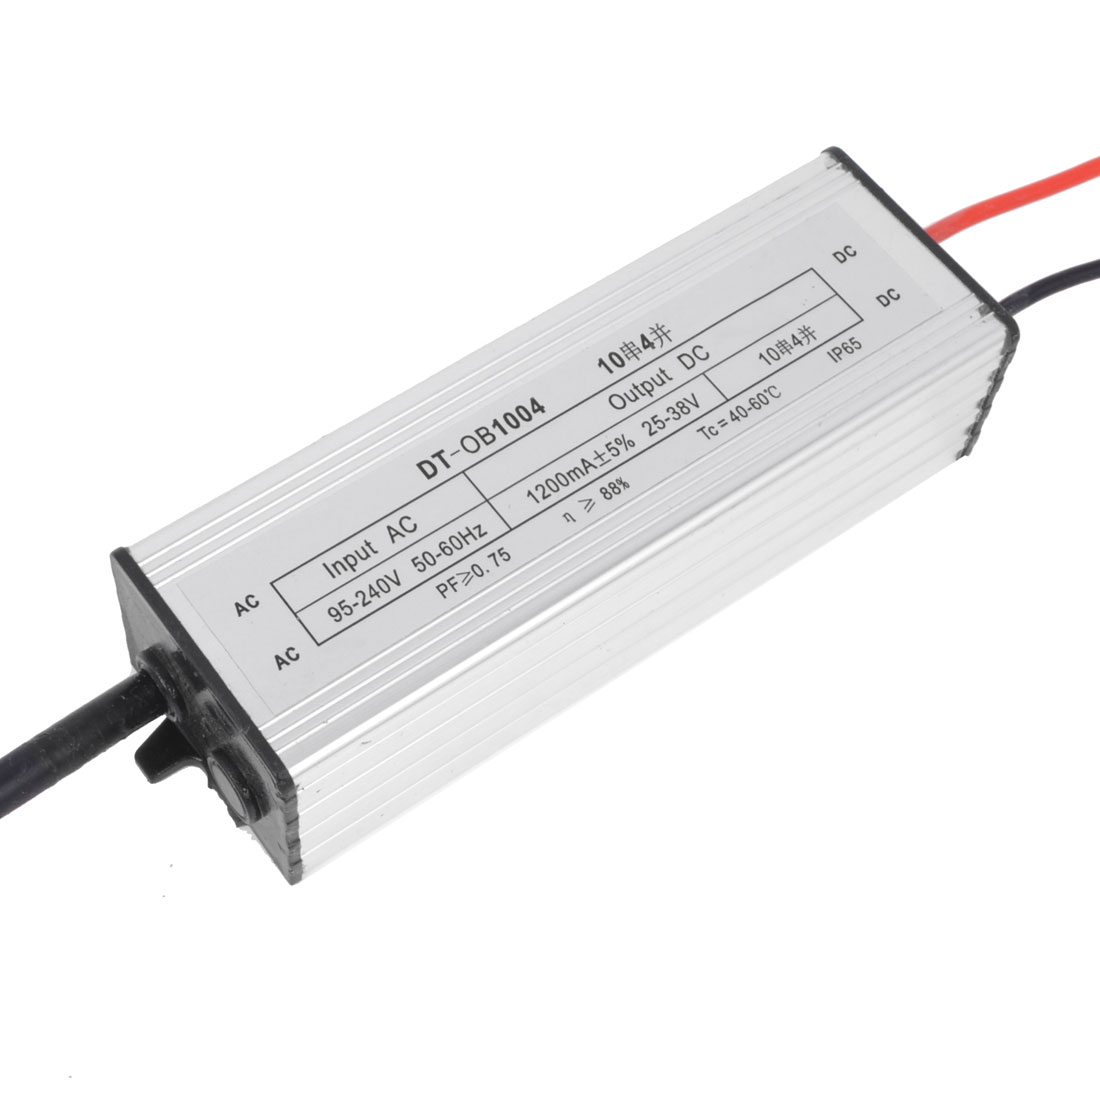 DC 25-38V 1200mA 40W Waterproof LED Driver Transformer High Power Supply